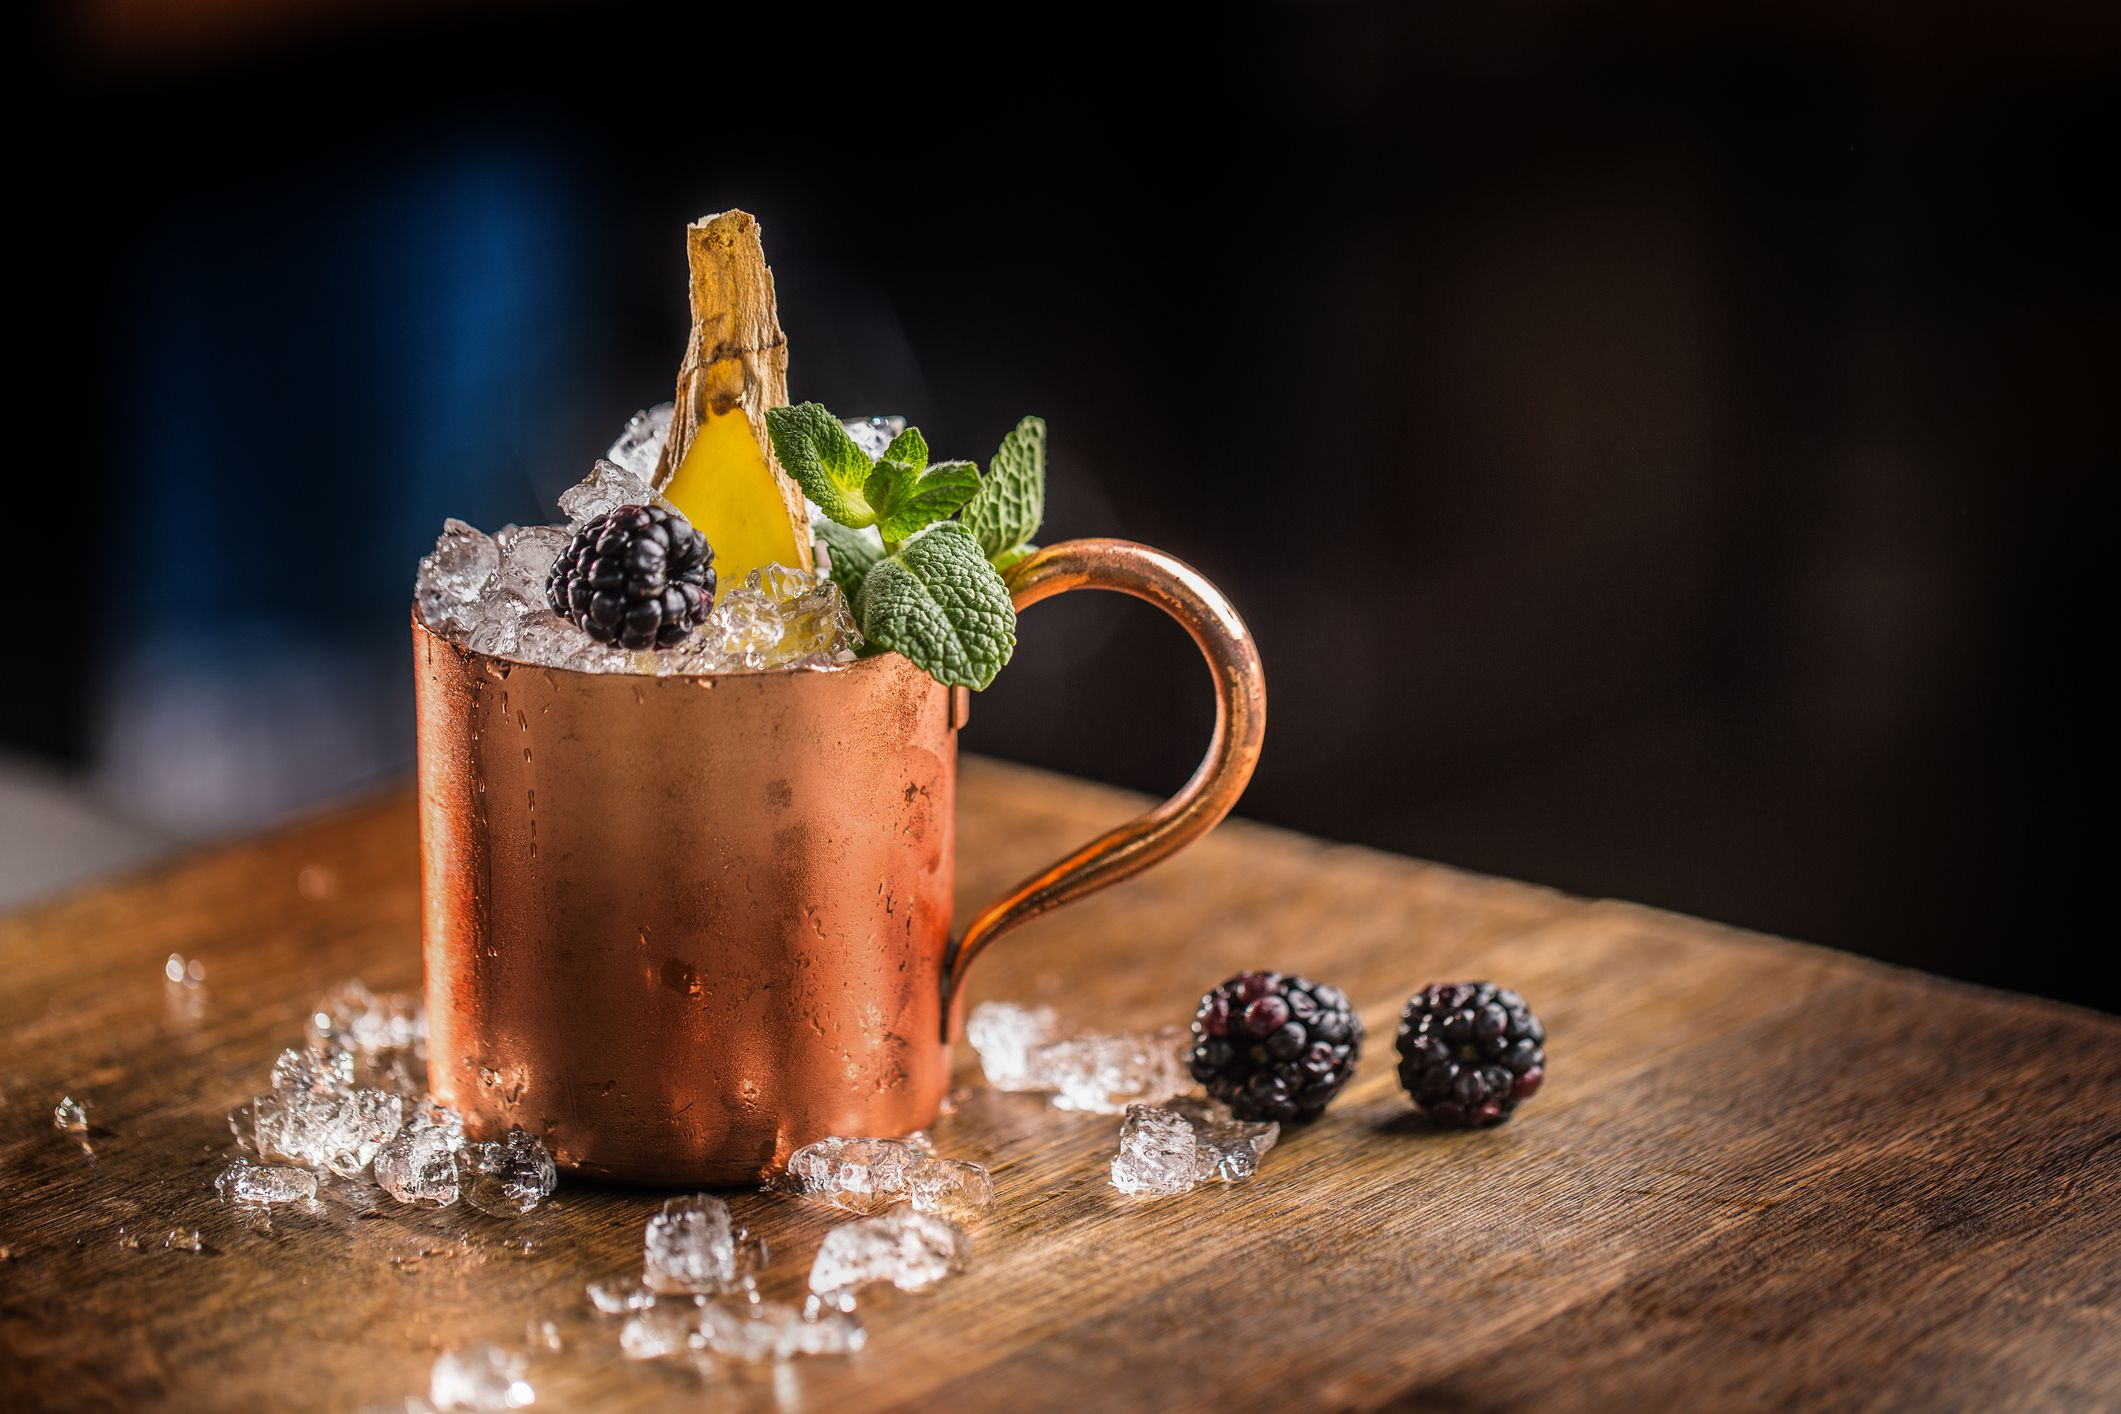 image regarding Moscow Mule Recipe Printable referred to as 12 Least difficult Moscow Mule Consume Dissimilarities 2019 - Moscow Mule Recipe